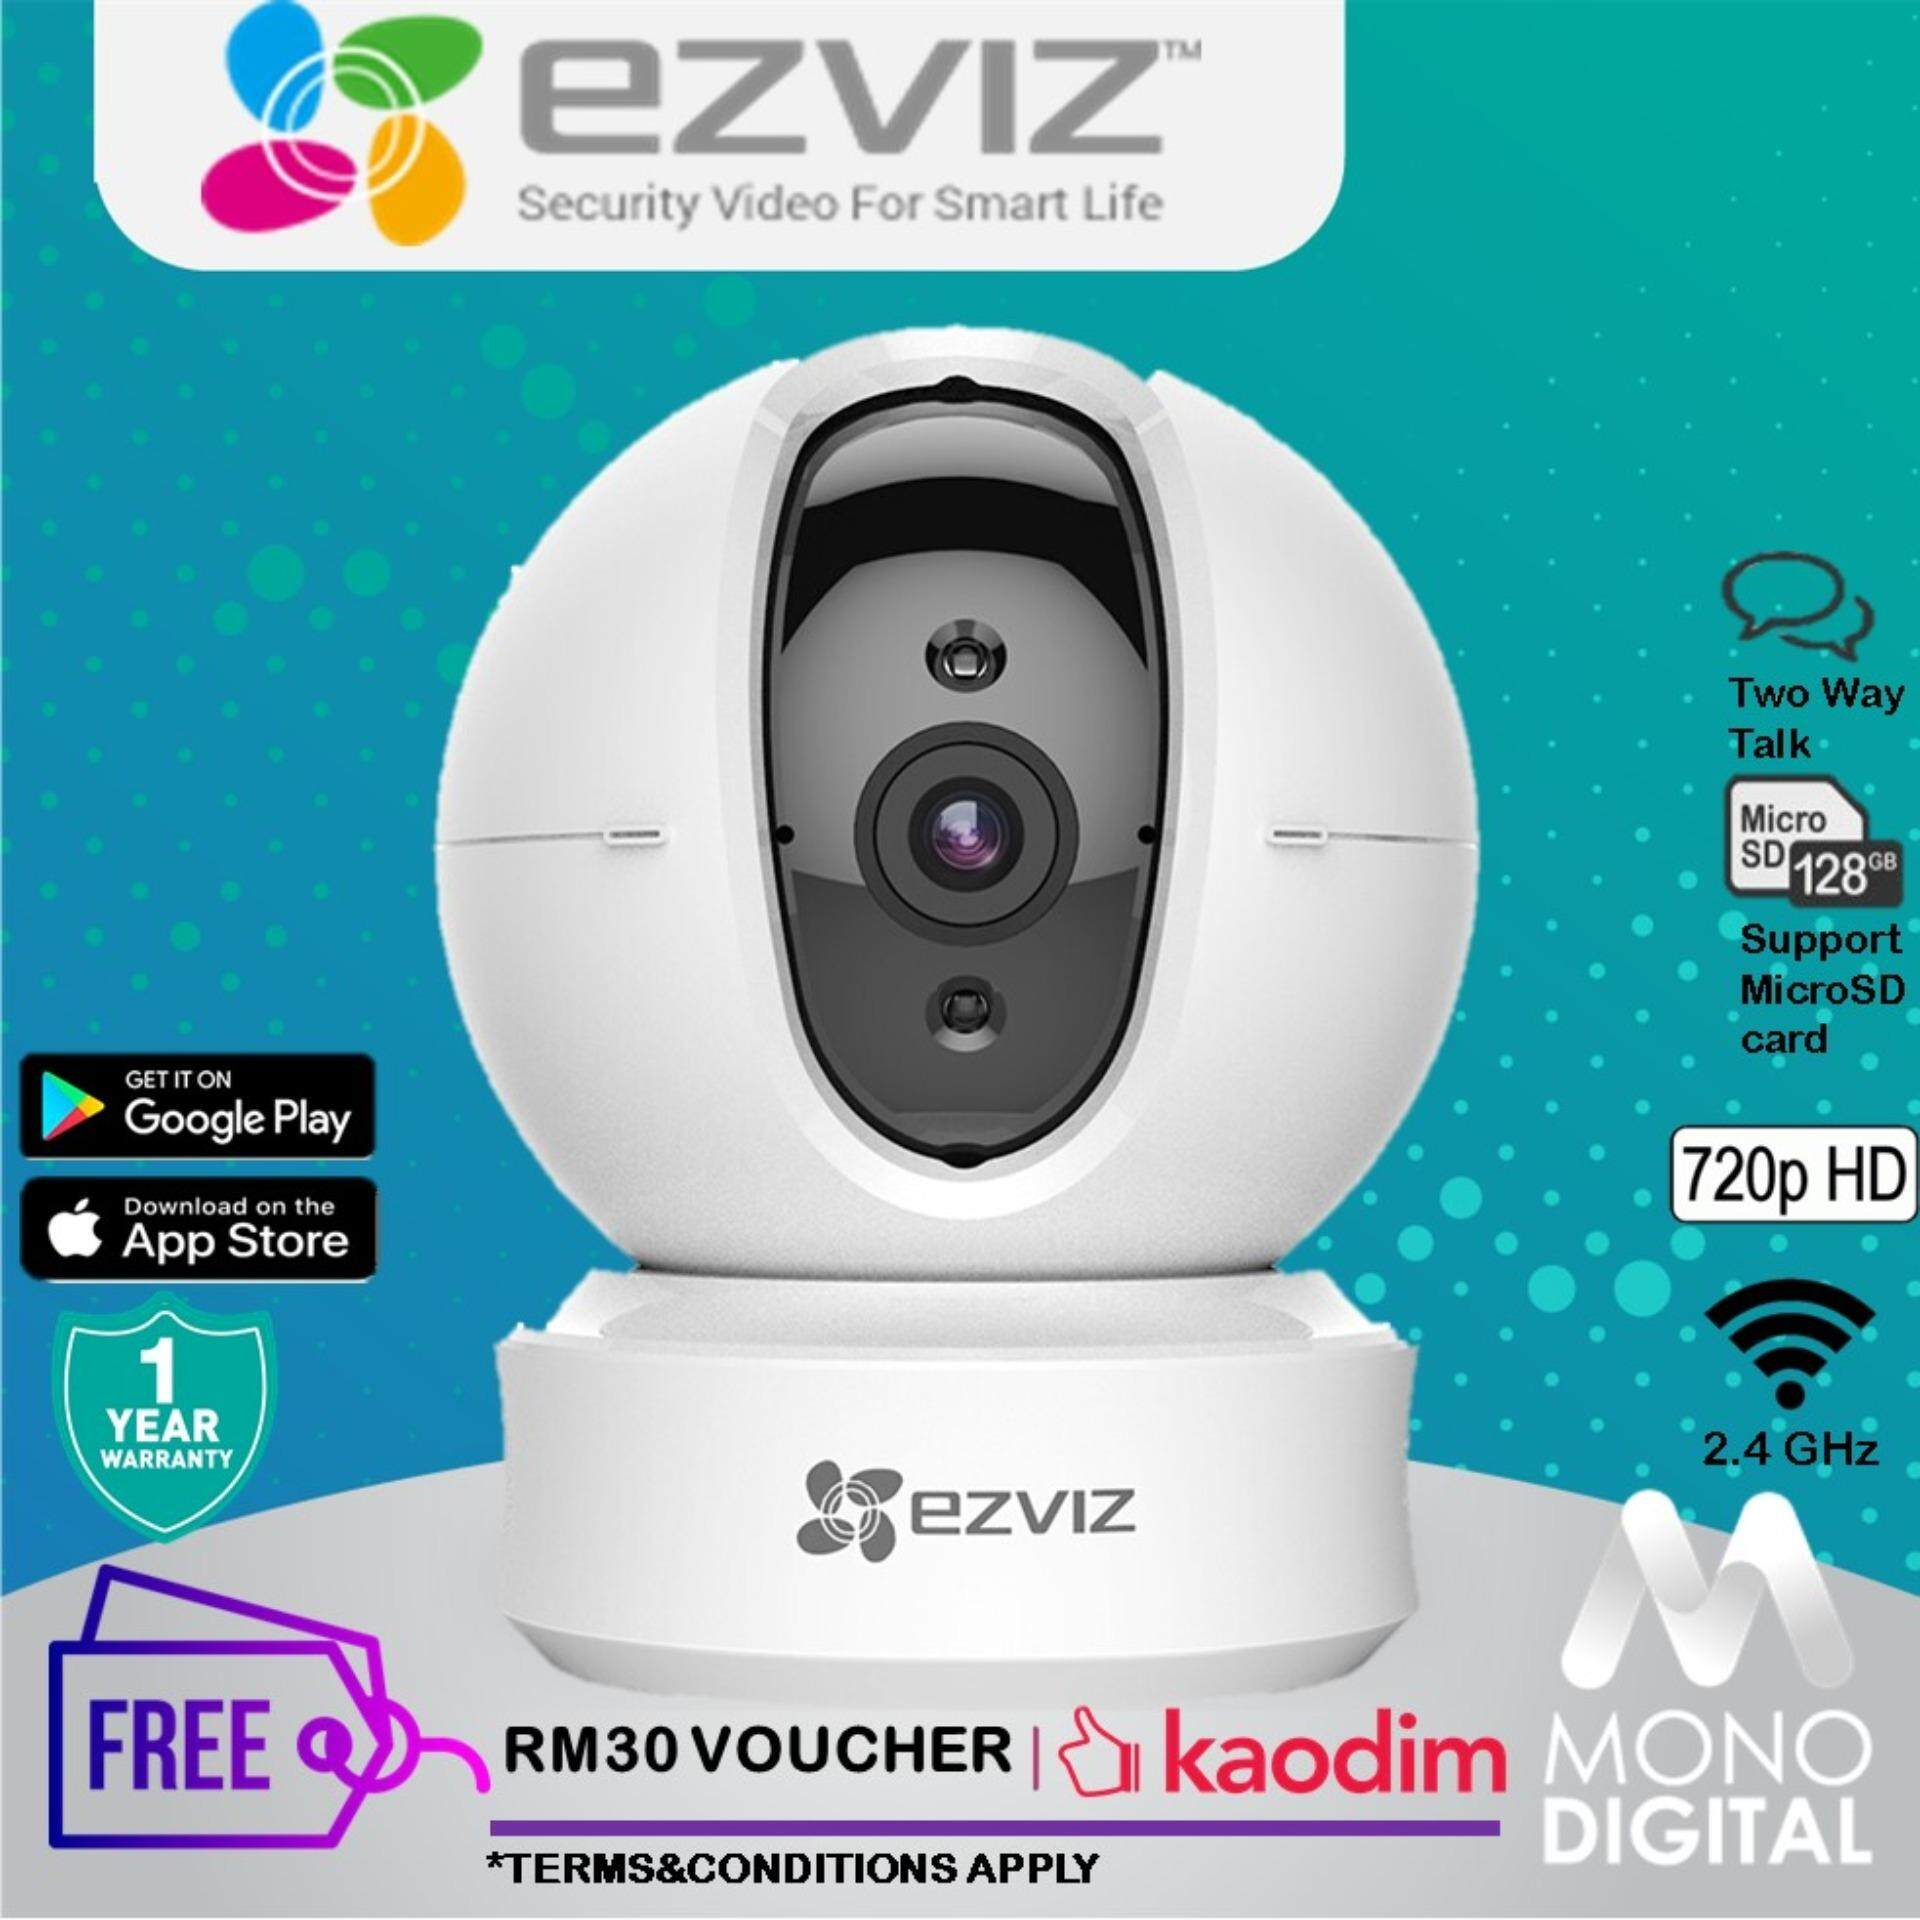 Ezviz - Buy Ezviz at Best Price in Malaysia | www lazada com my